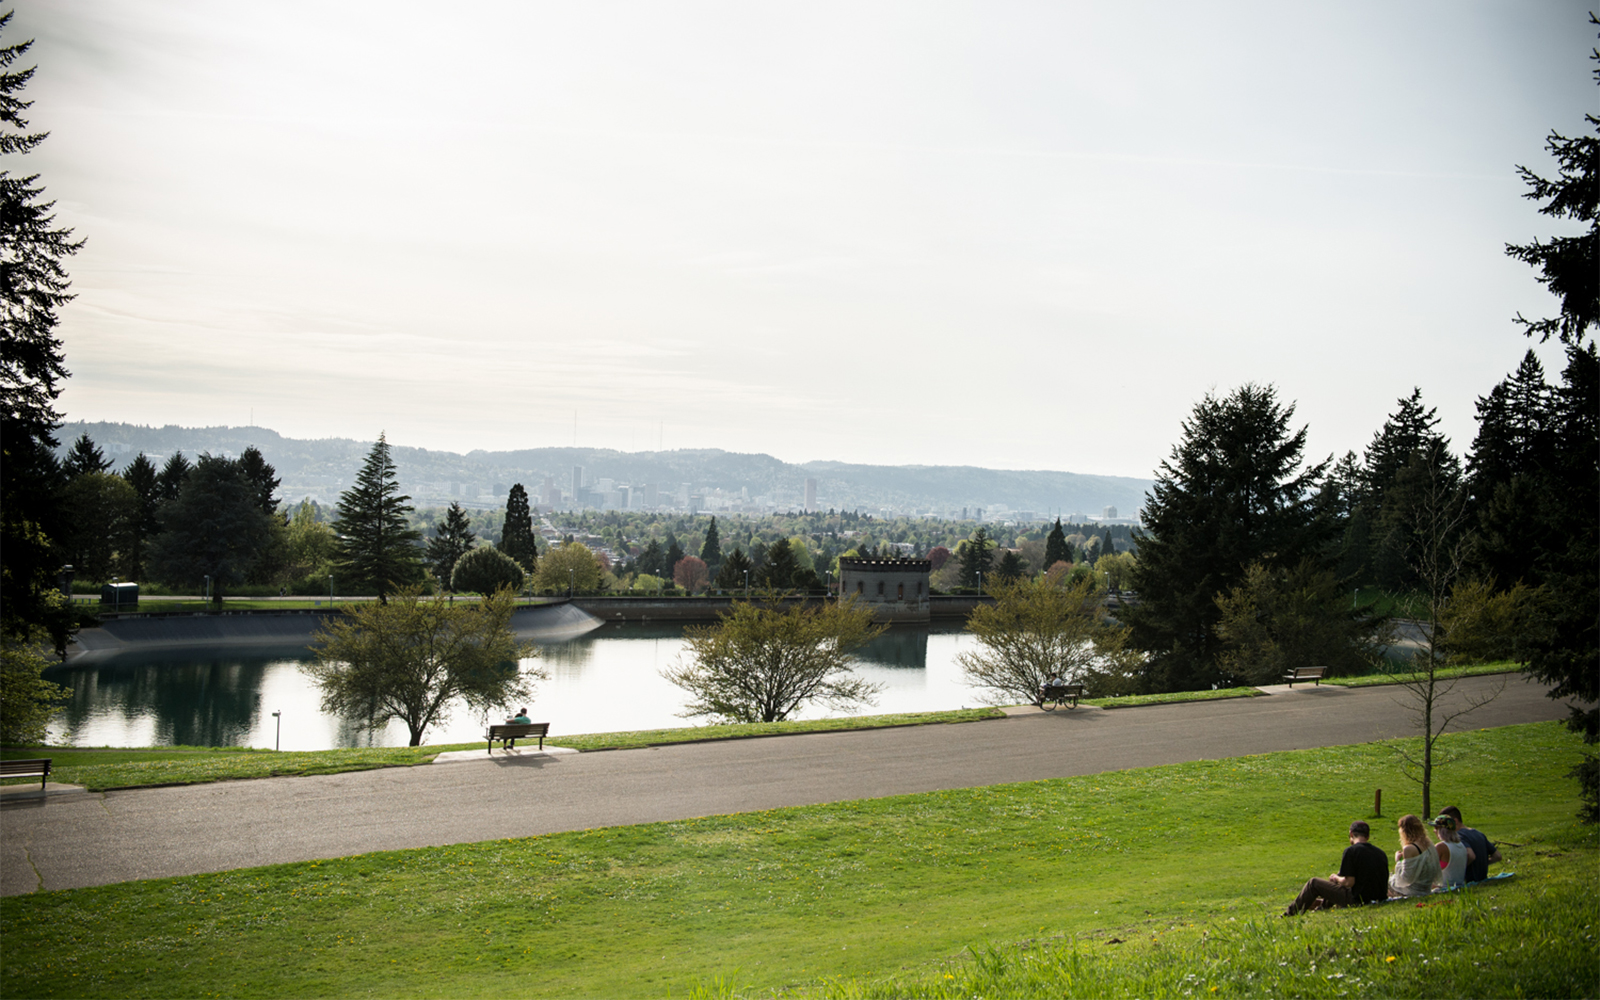 America's Best Cities for Picnics: No. 12 Portland, OR